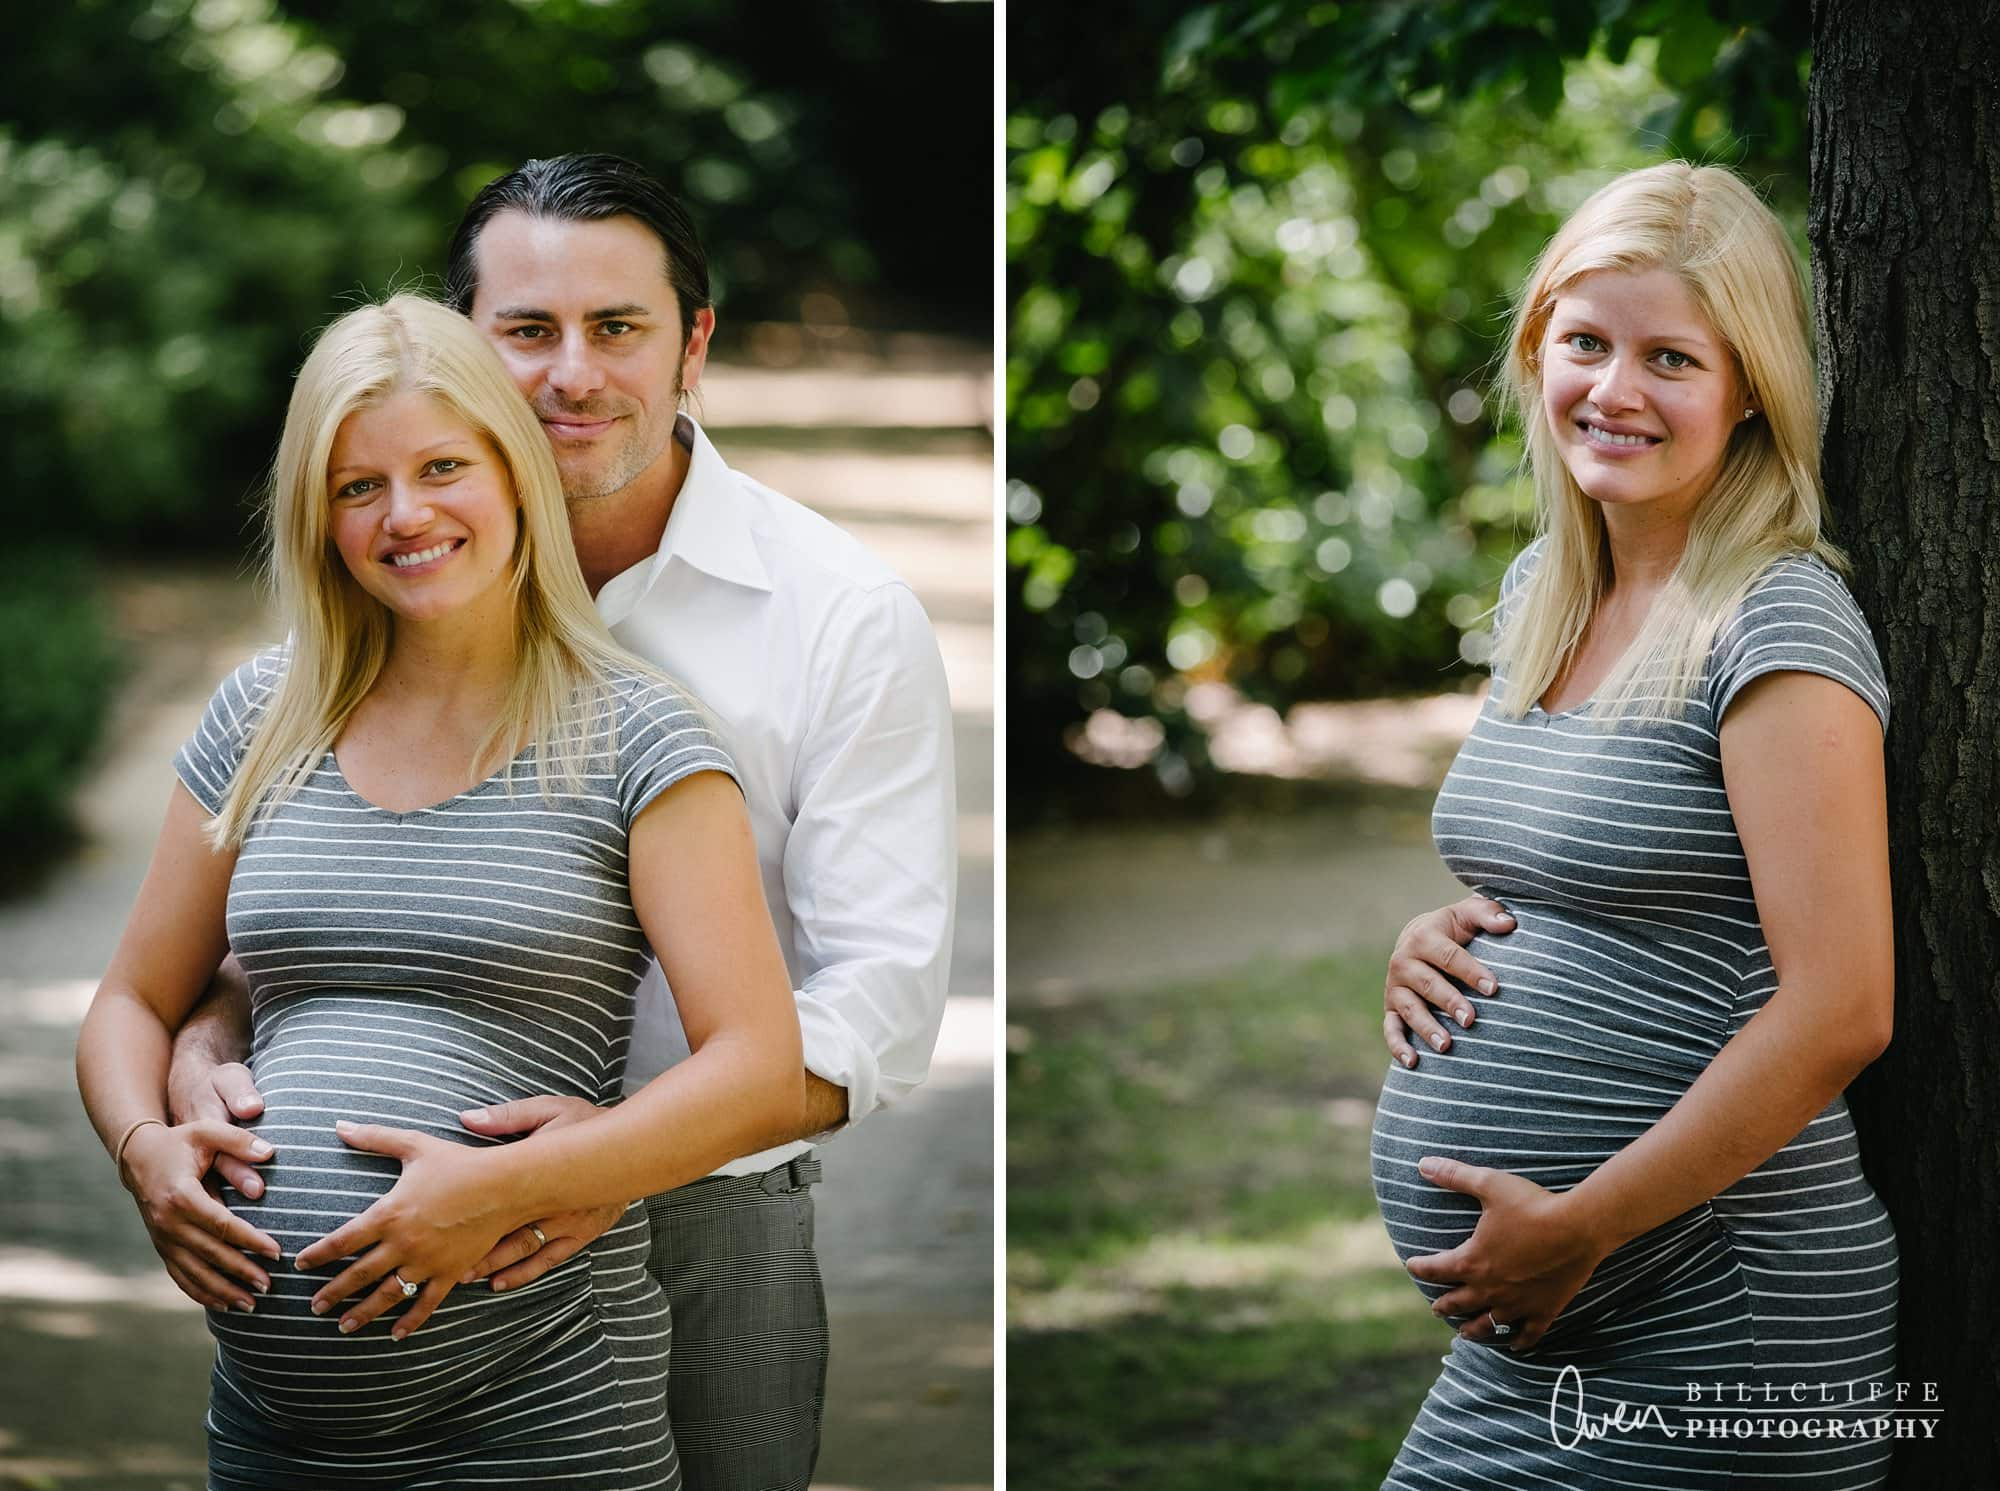 london family photographer london belgravia w1 011 - Belgravia Family Photography | The W Family